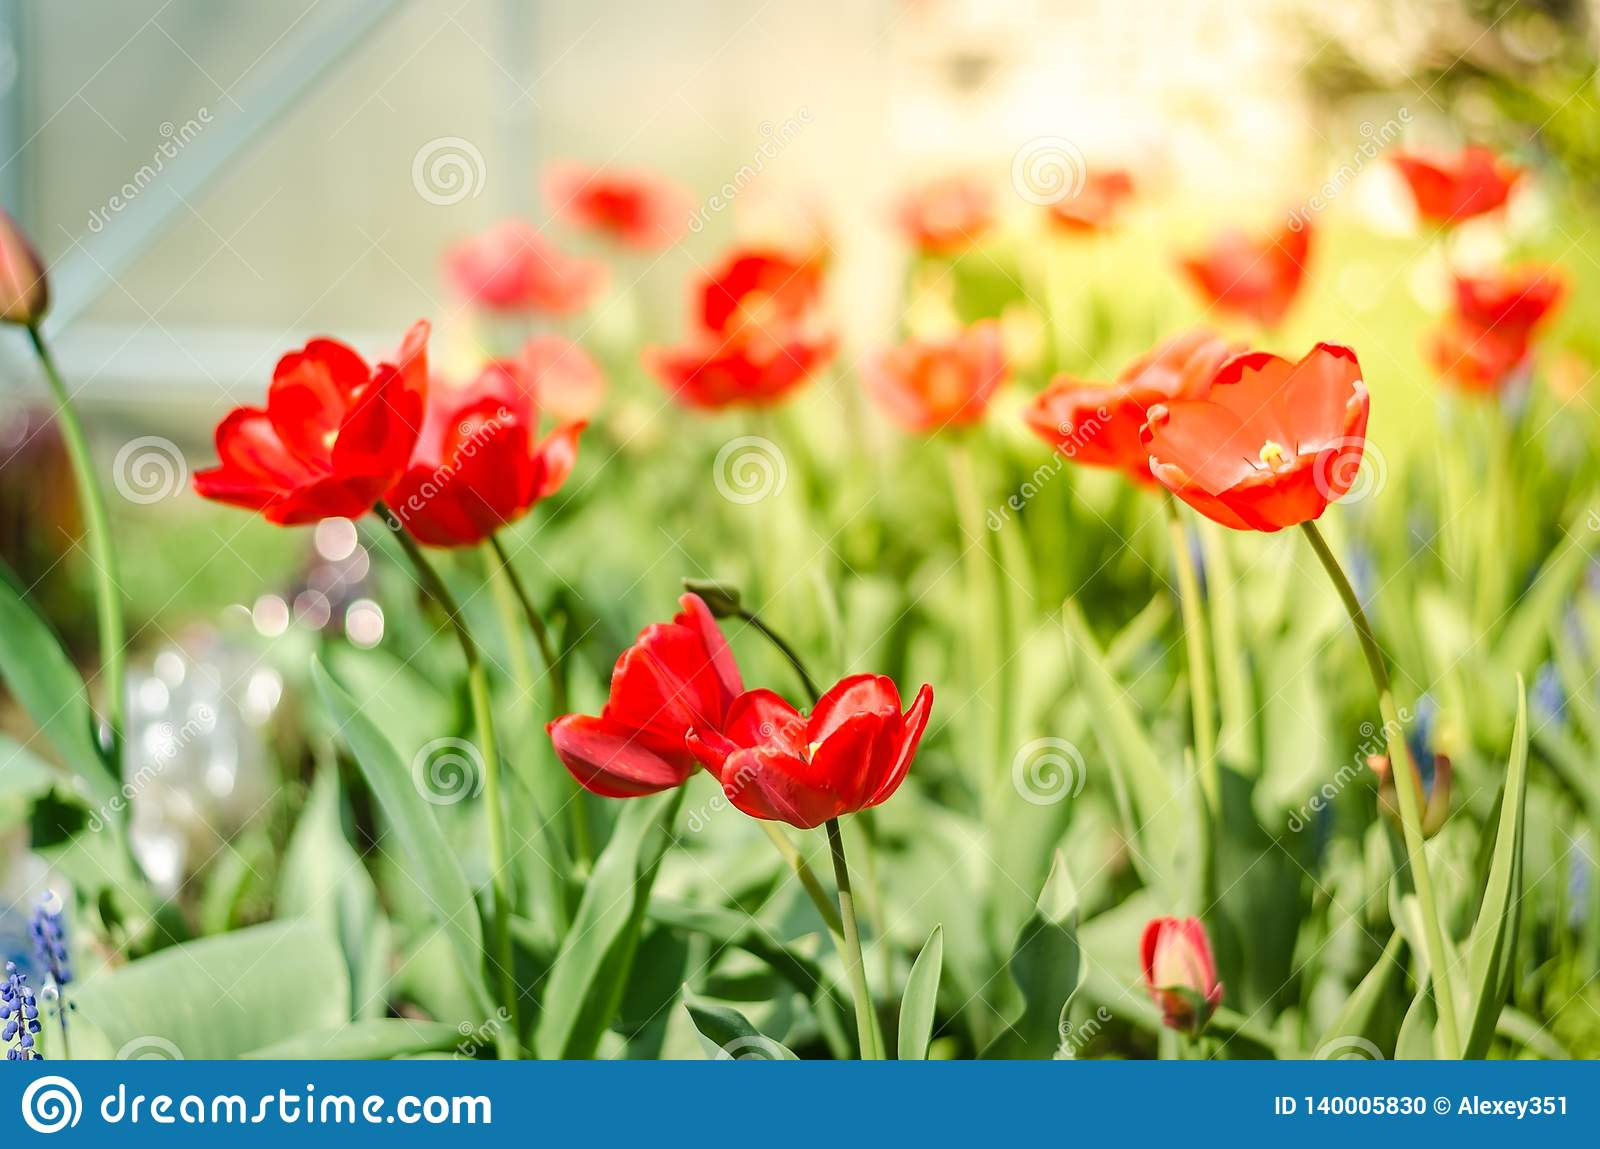 Beautiful nature scene with blooming red tulip in sun flare/ Spring flowers. Beautiful meadow. Field flowers tulip